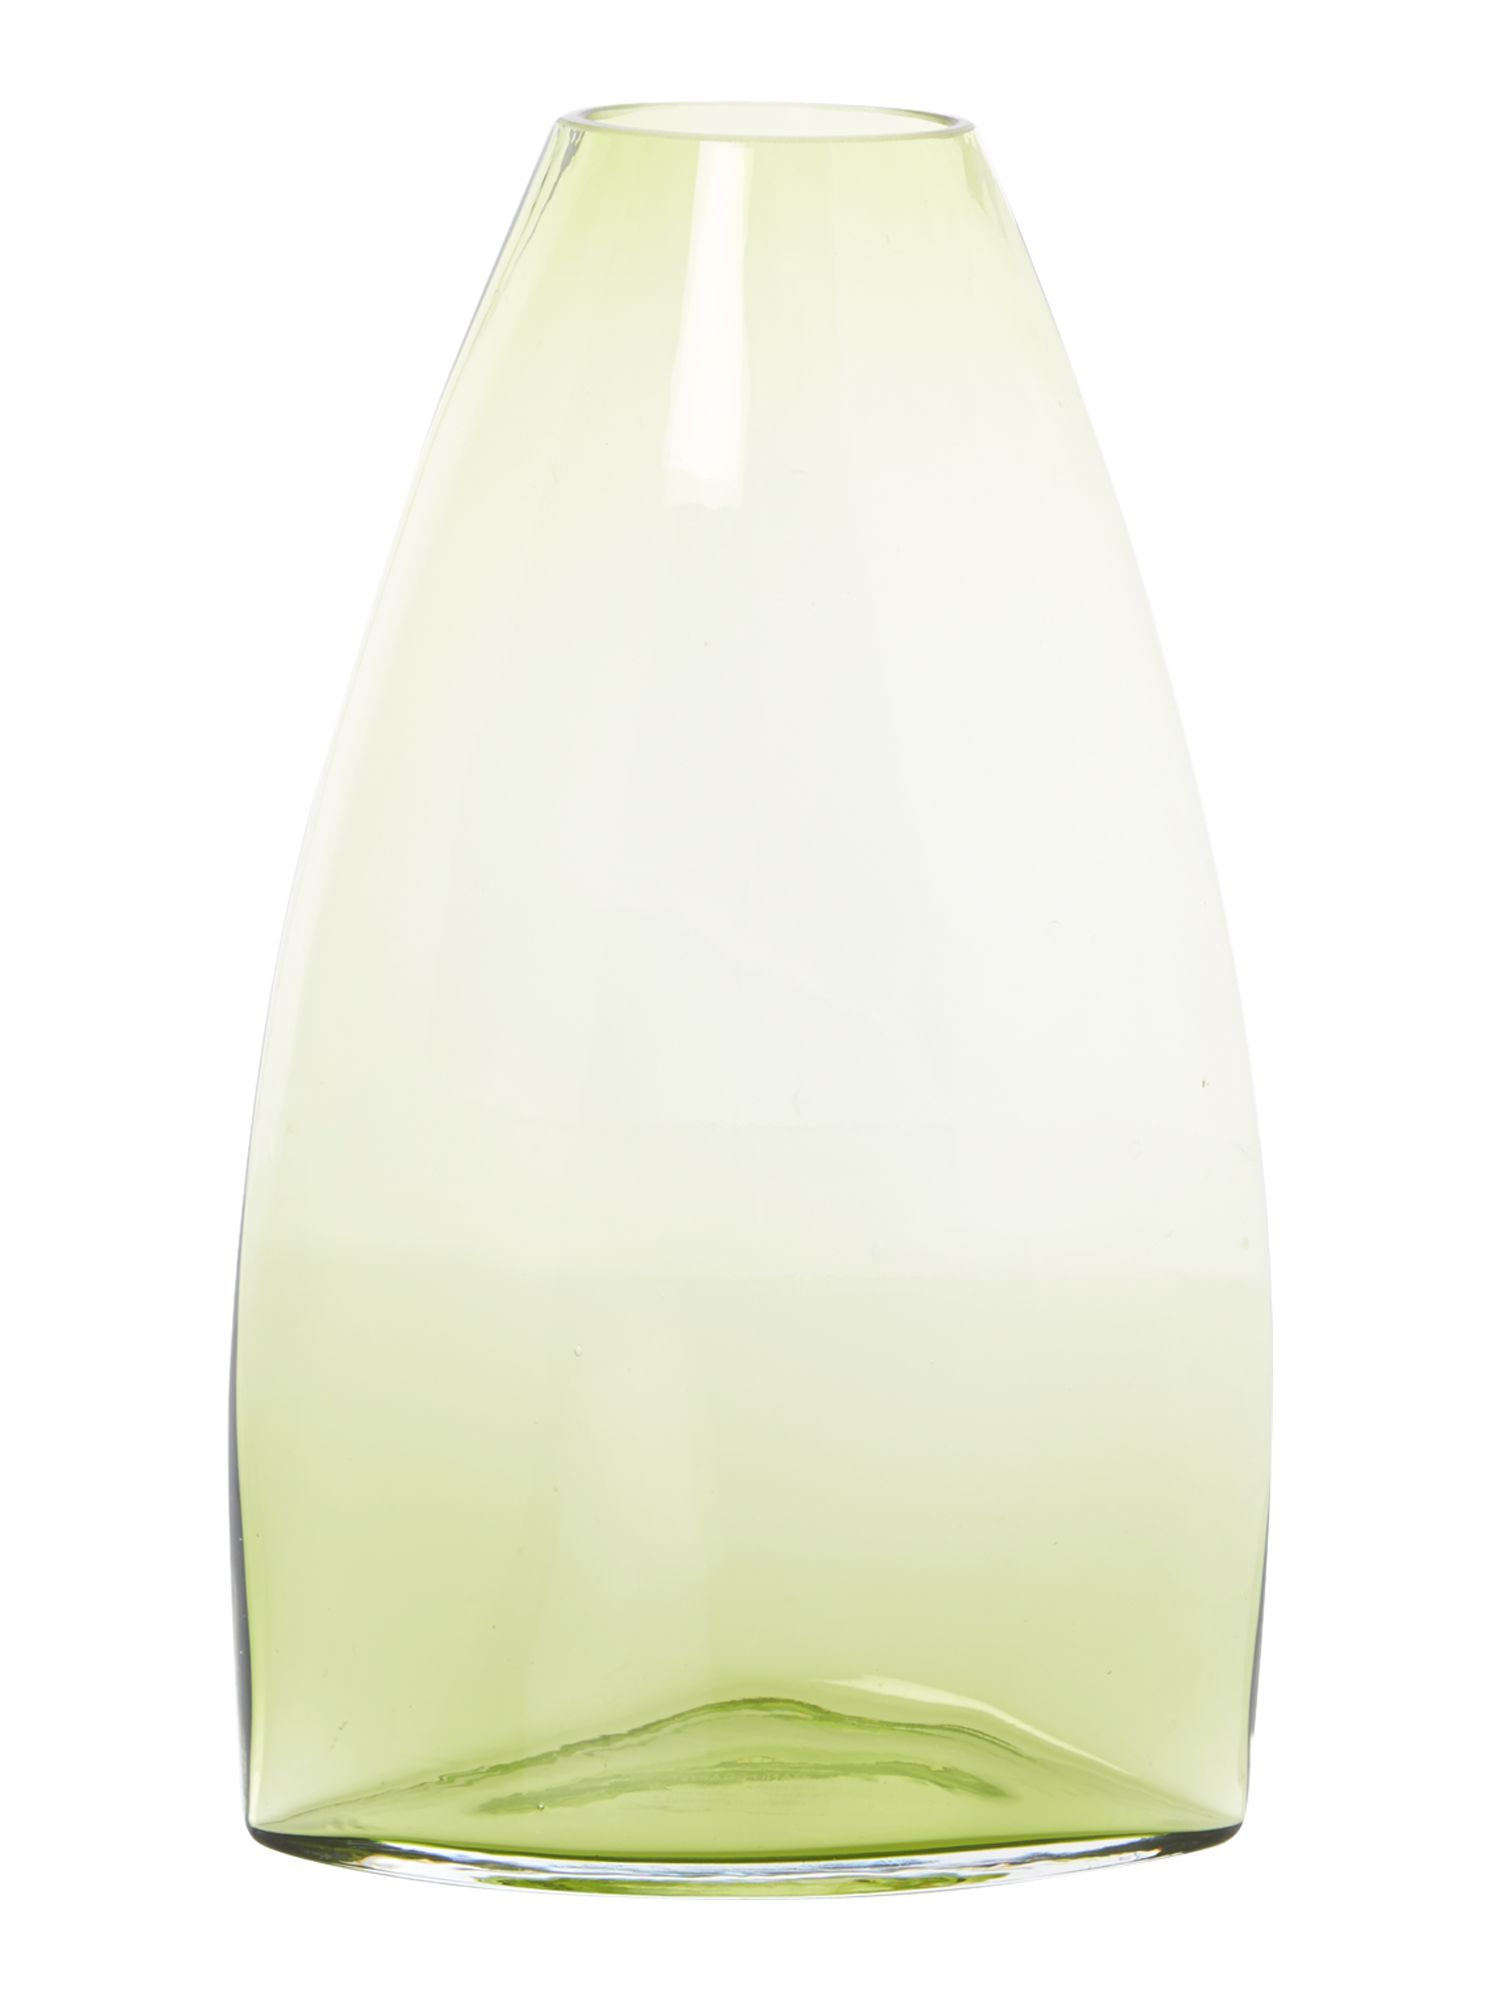 Green glass vase, large